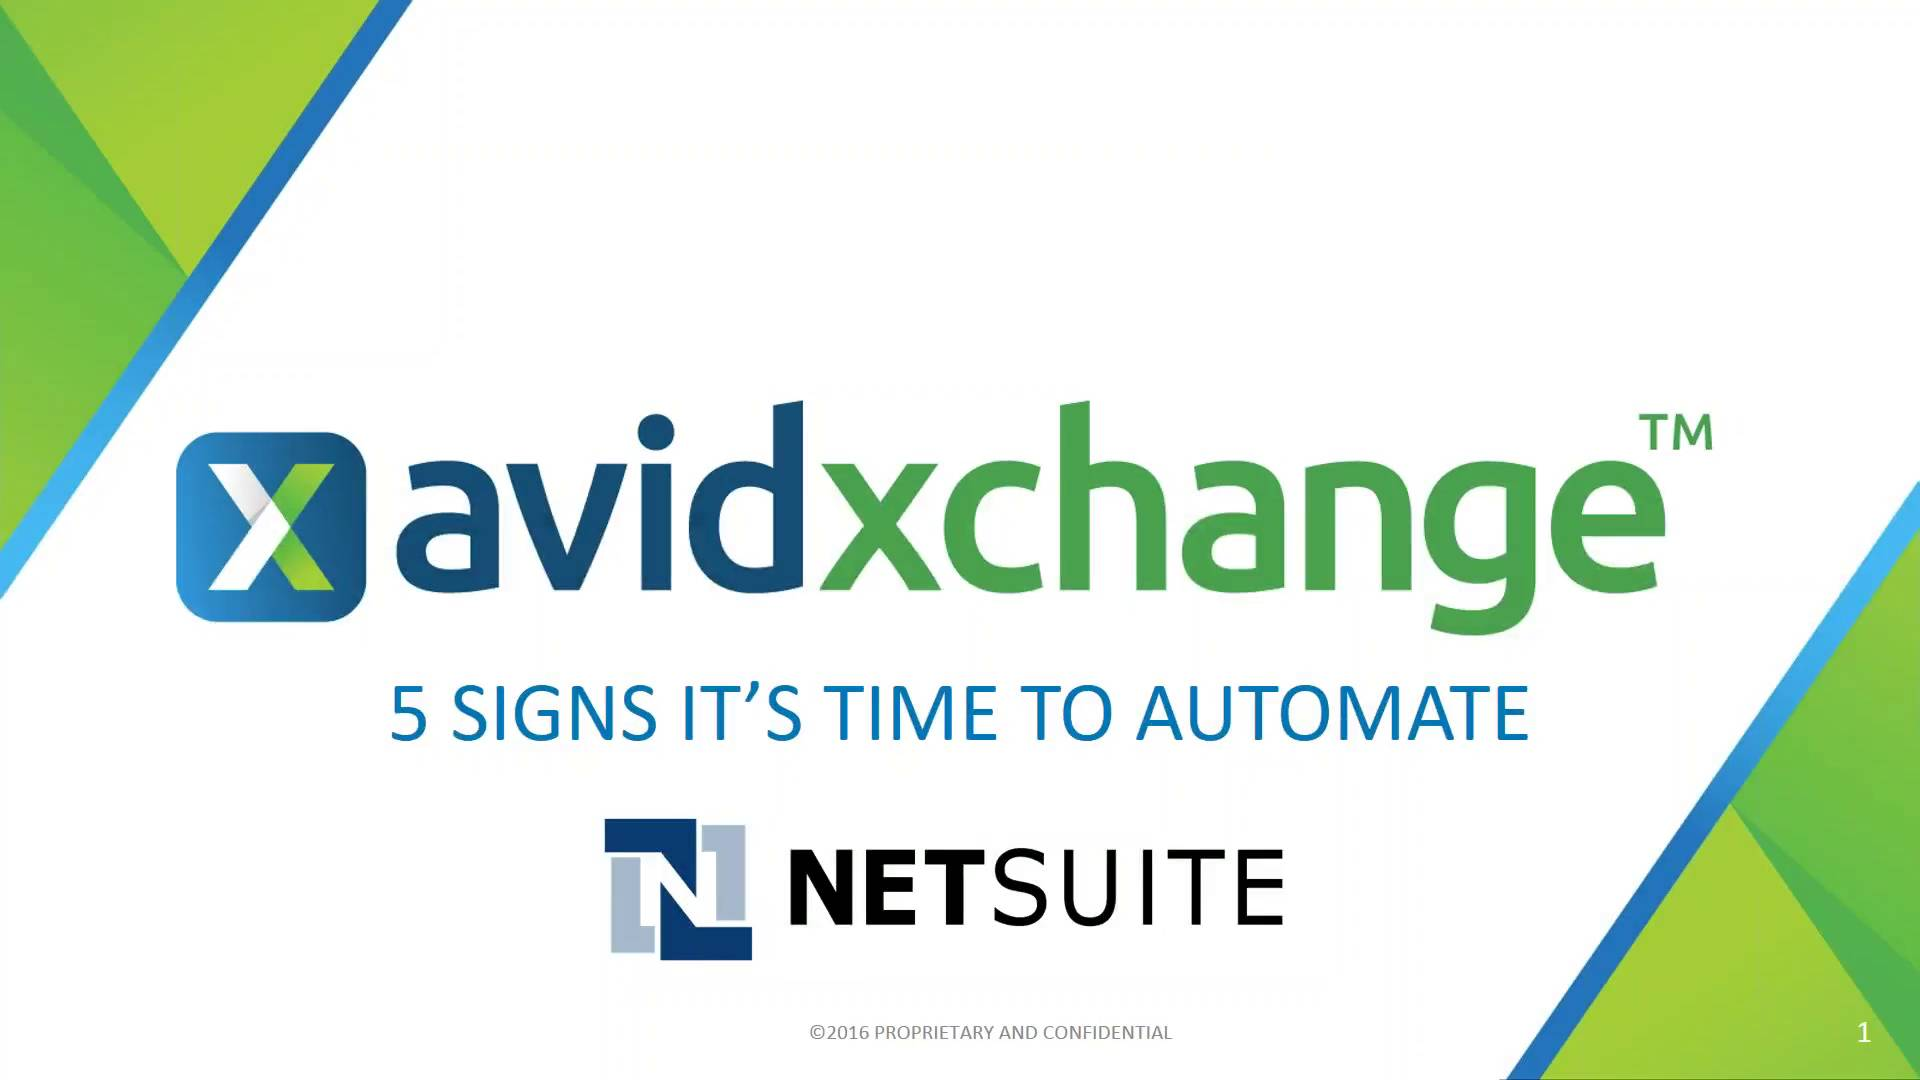 Netsuite users 5 signs its time to automate accounts payable netsuite users 5 signs its time to automate accounts payable avidxchange fandeluxe Image collections